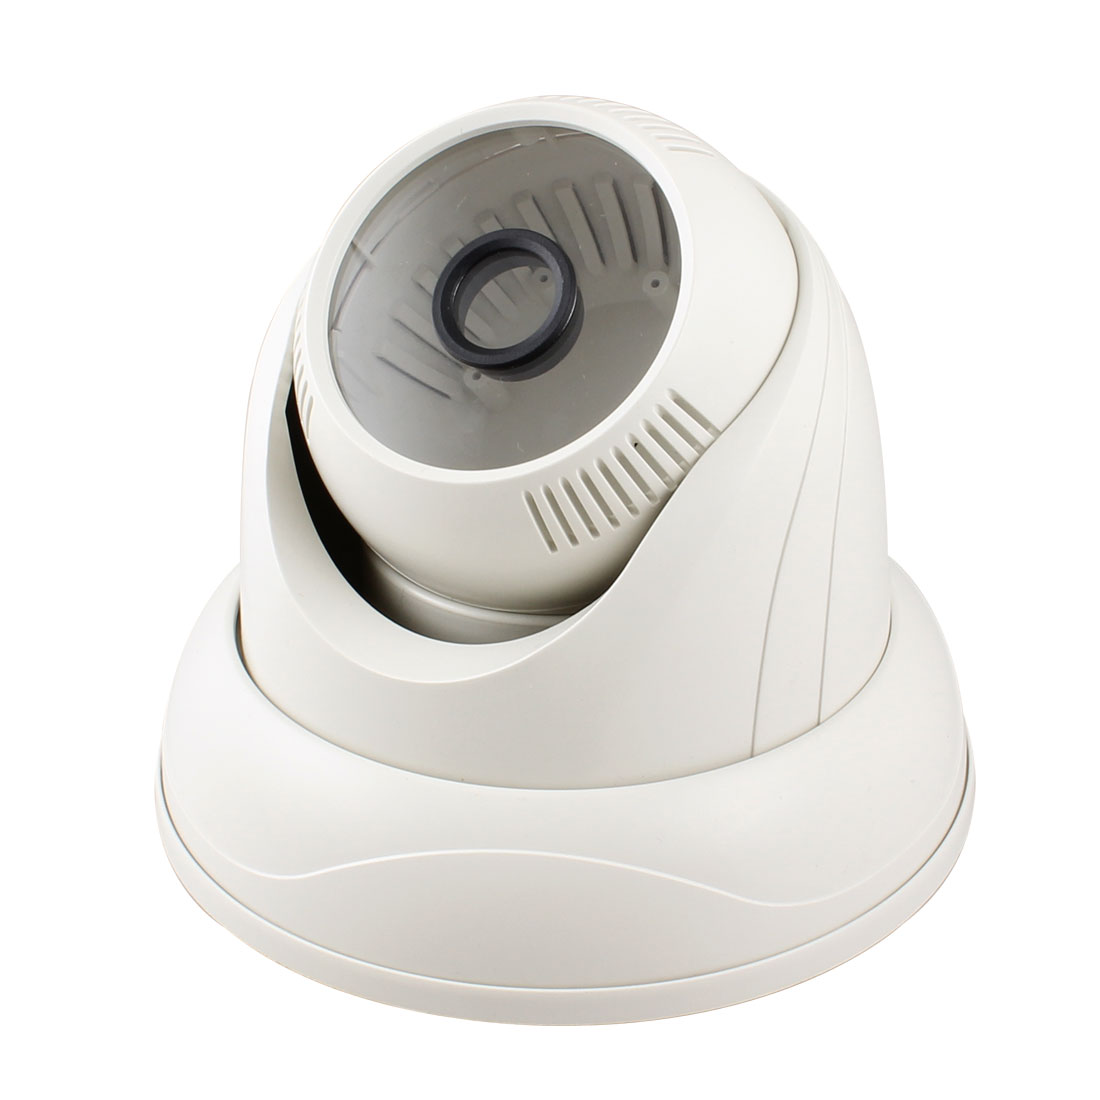 "White 5.5"" Dia Housing Case for Security CCTV CCD Dome Camera"